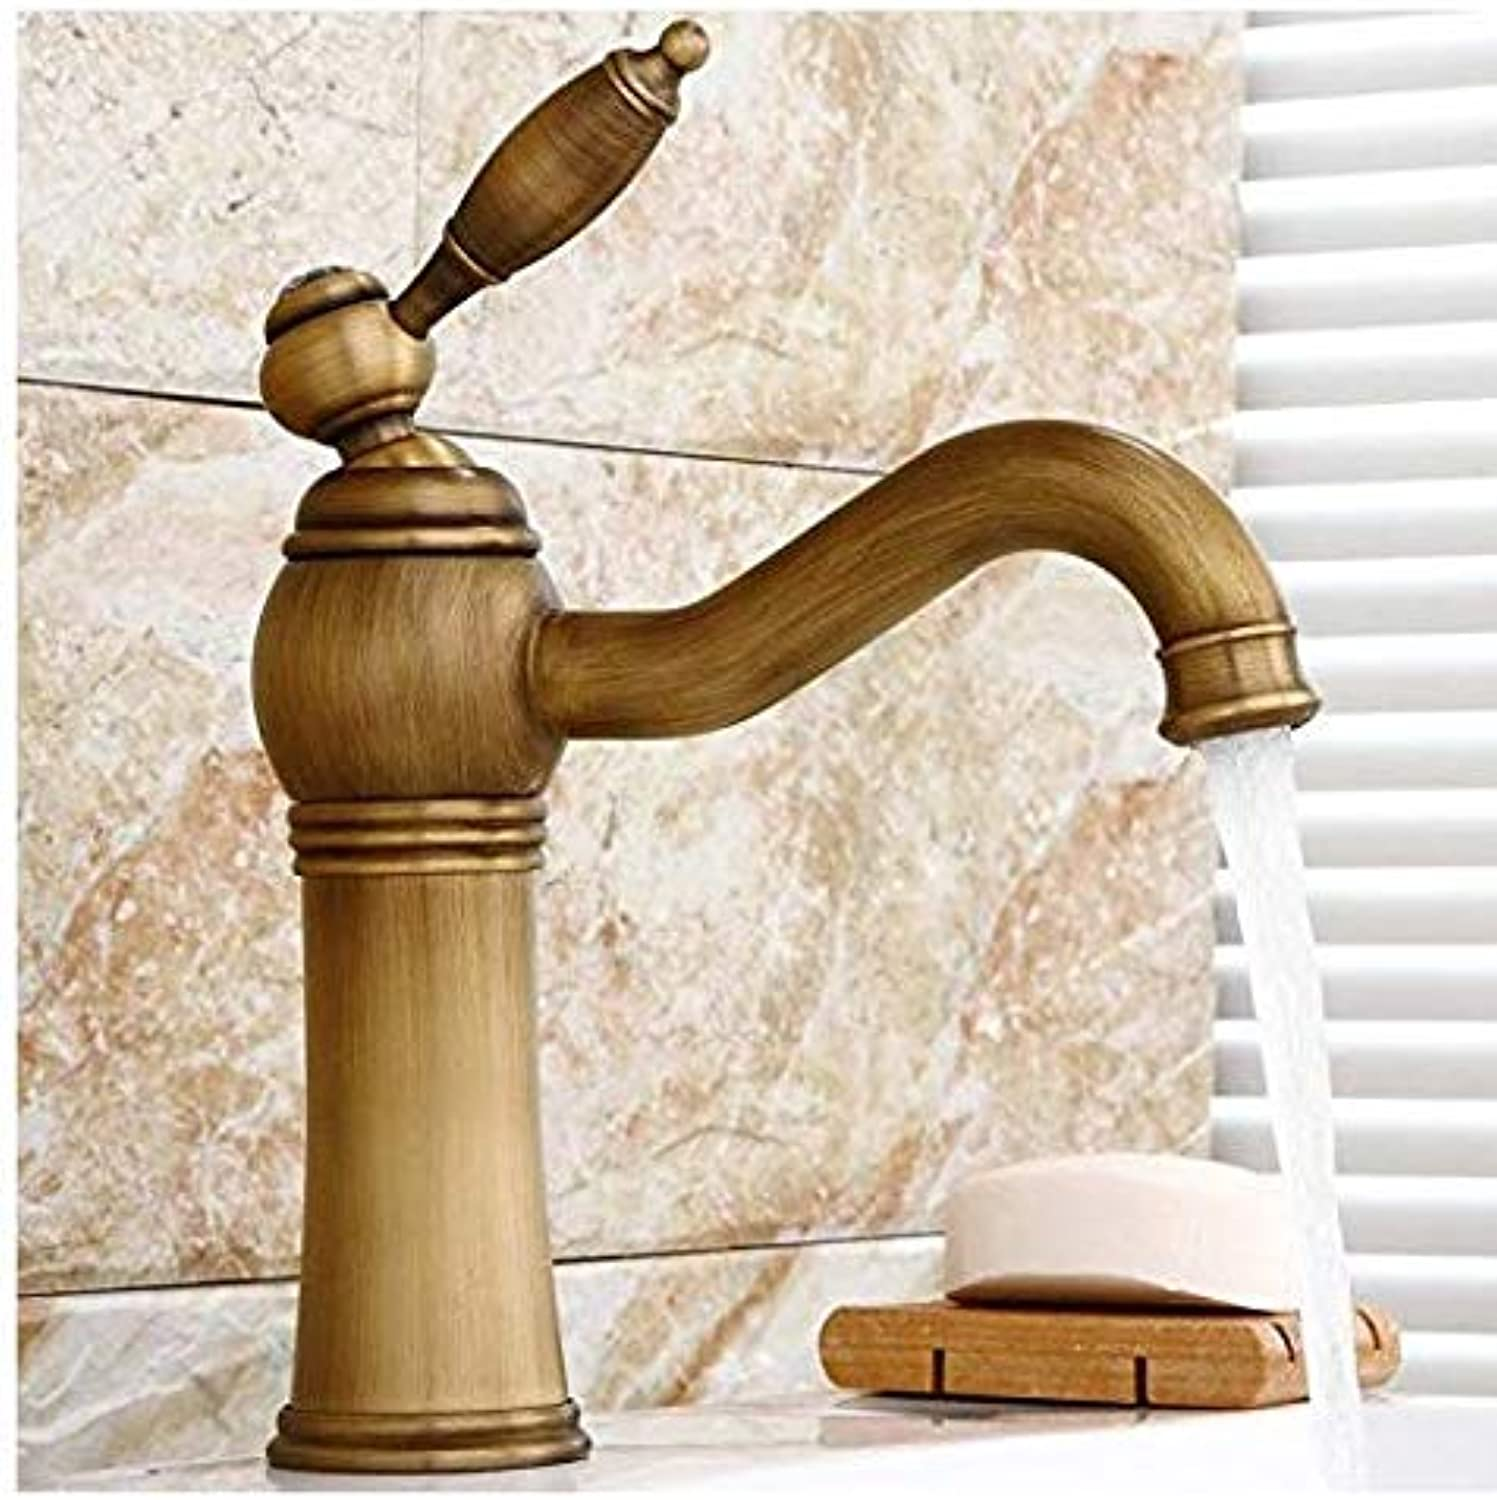 Modern Double Basin Sink Hot and Cold Water Faucetfaucet Copper Faucet European Retro Washbasin Countertop Hot and Cold Faucet